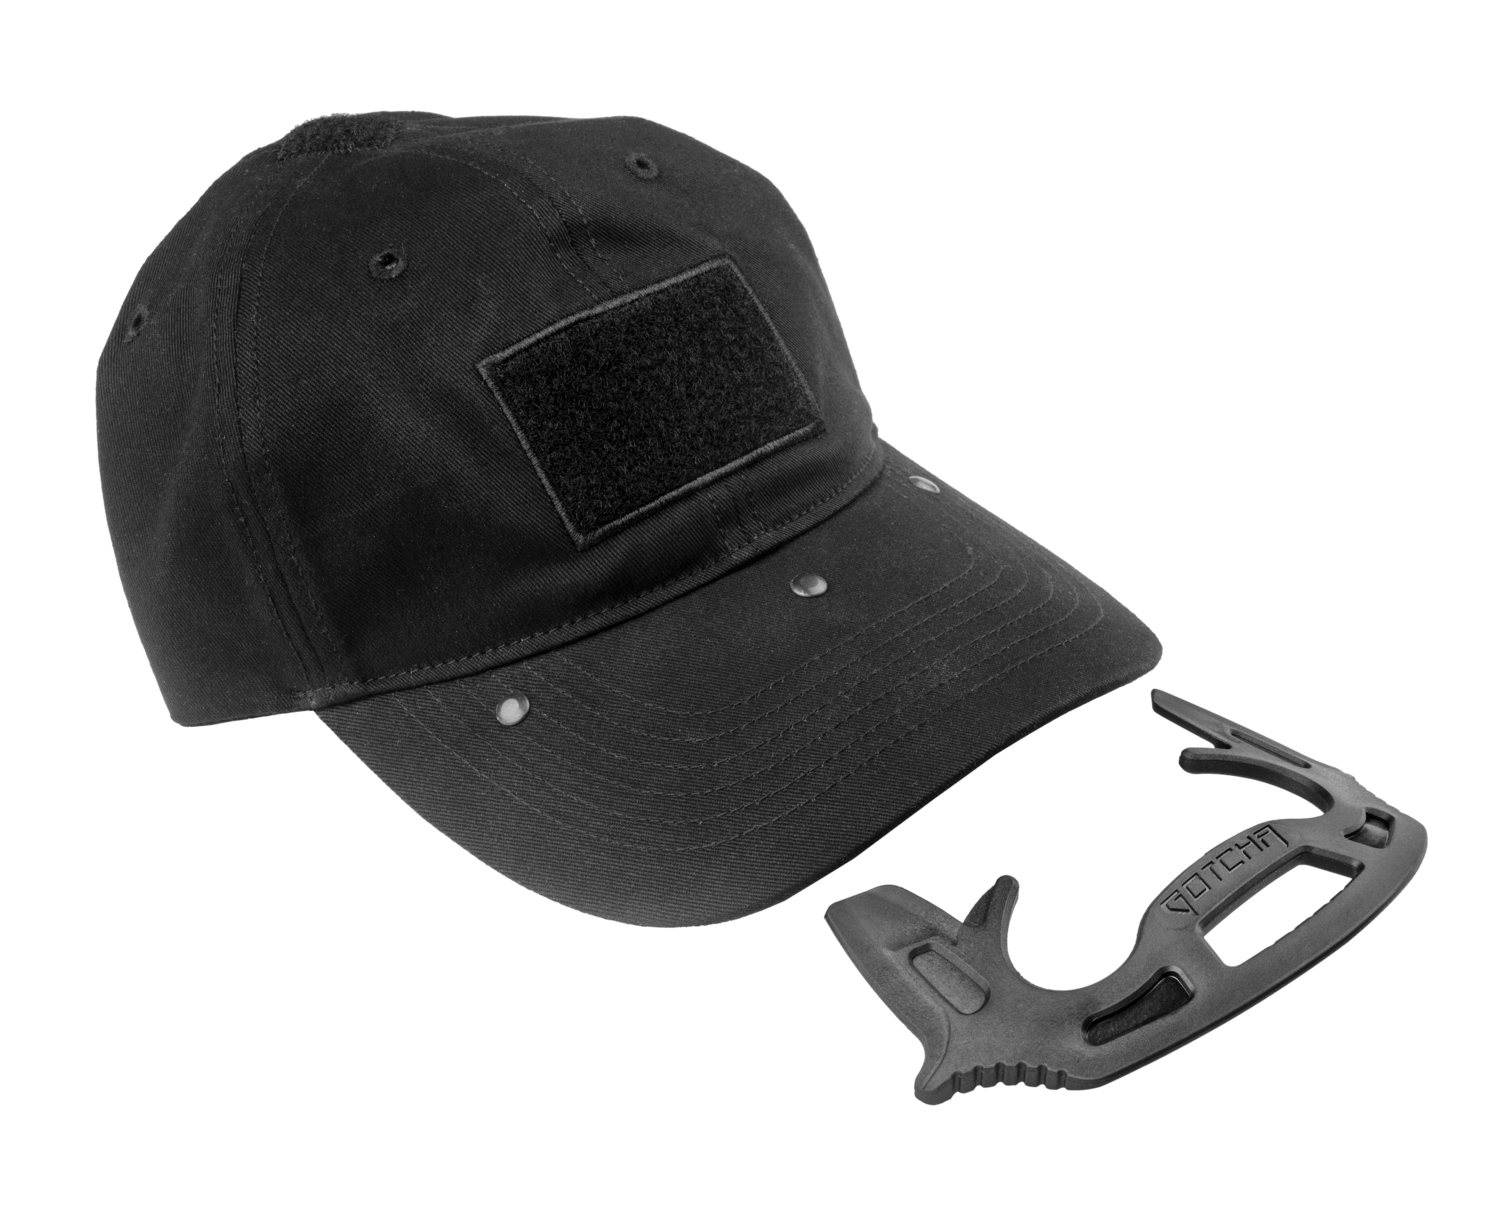 GOTCHA - Tactical Cap with Self-Defense Tool